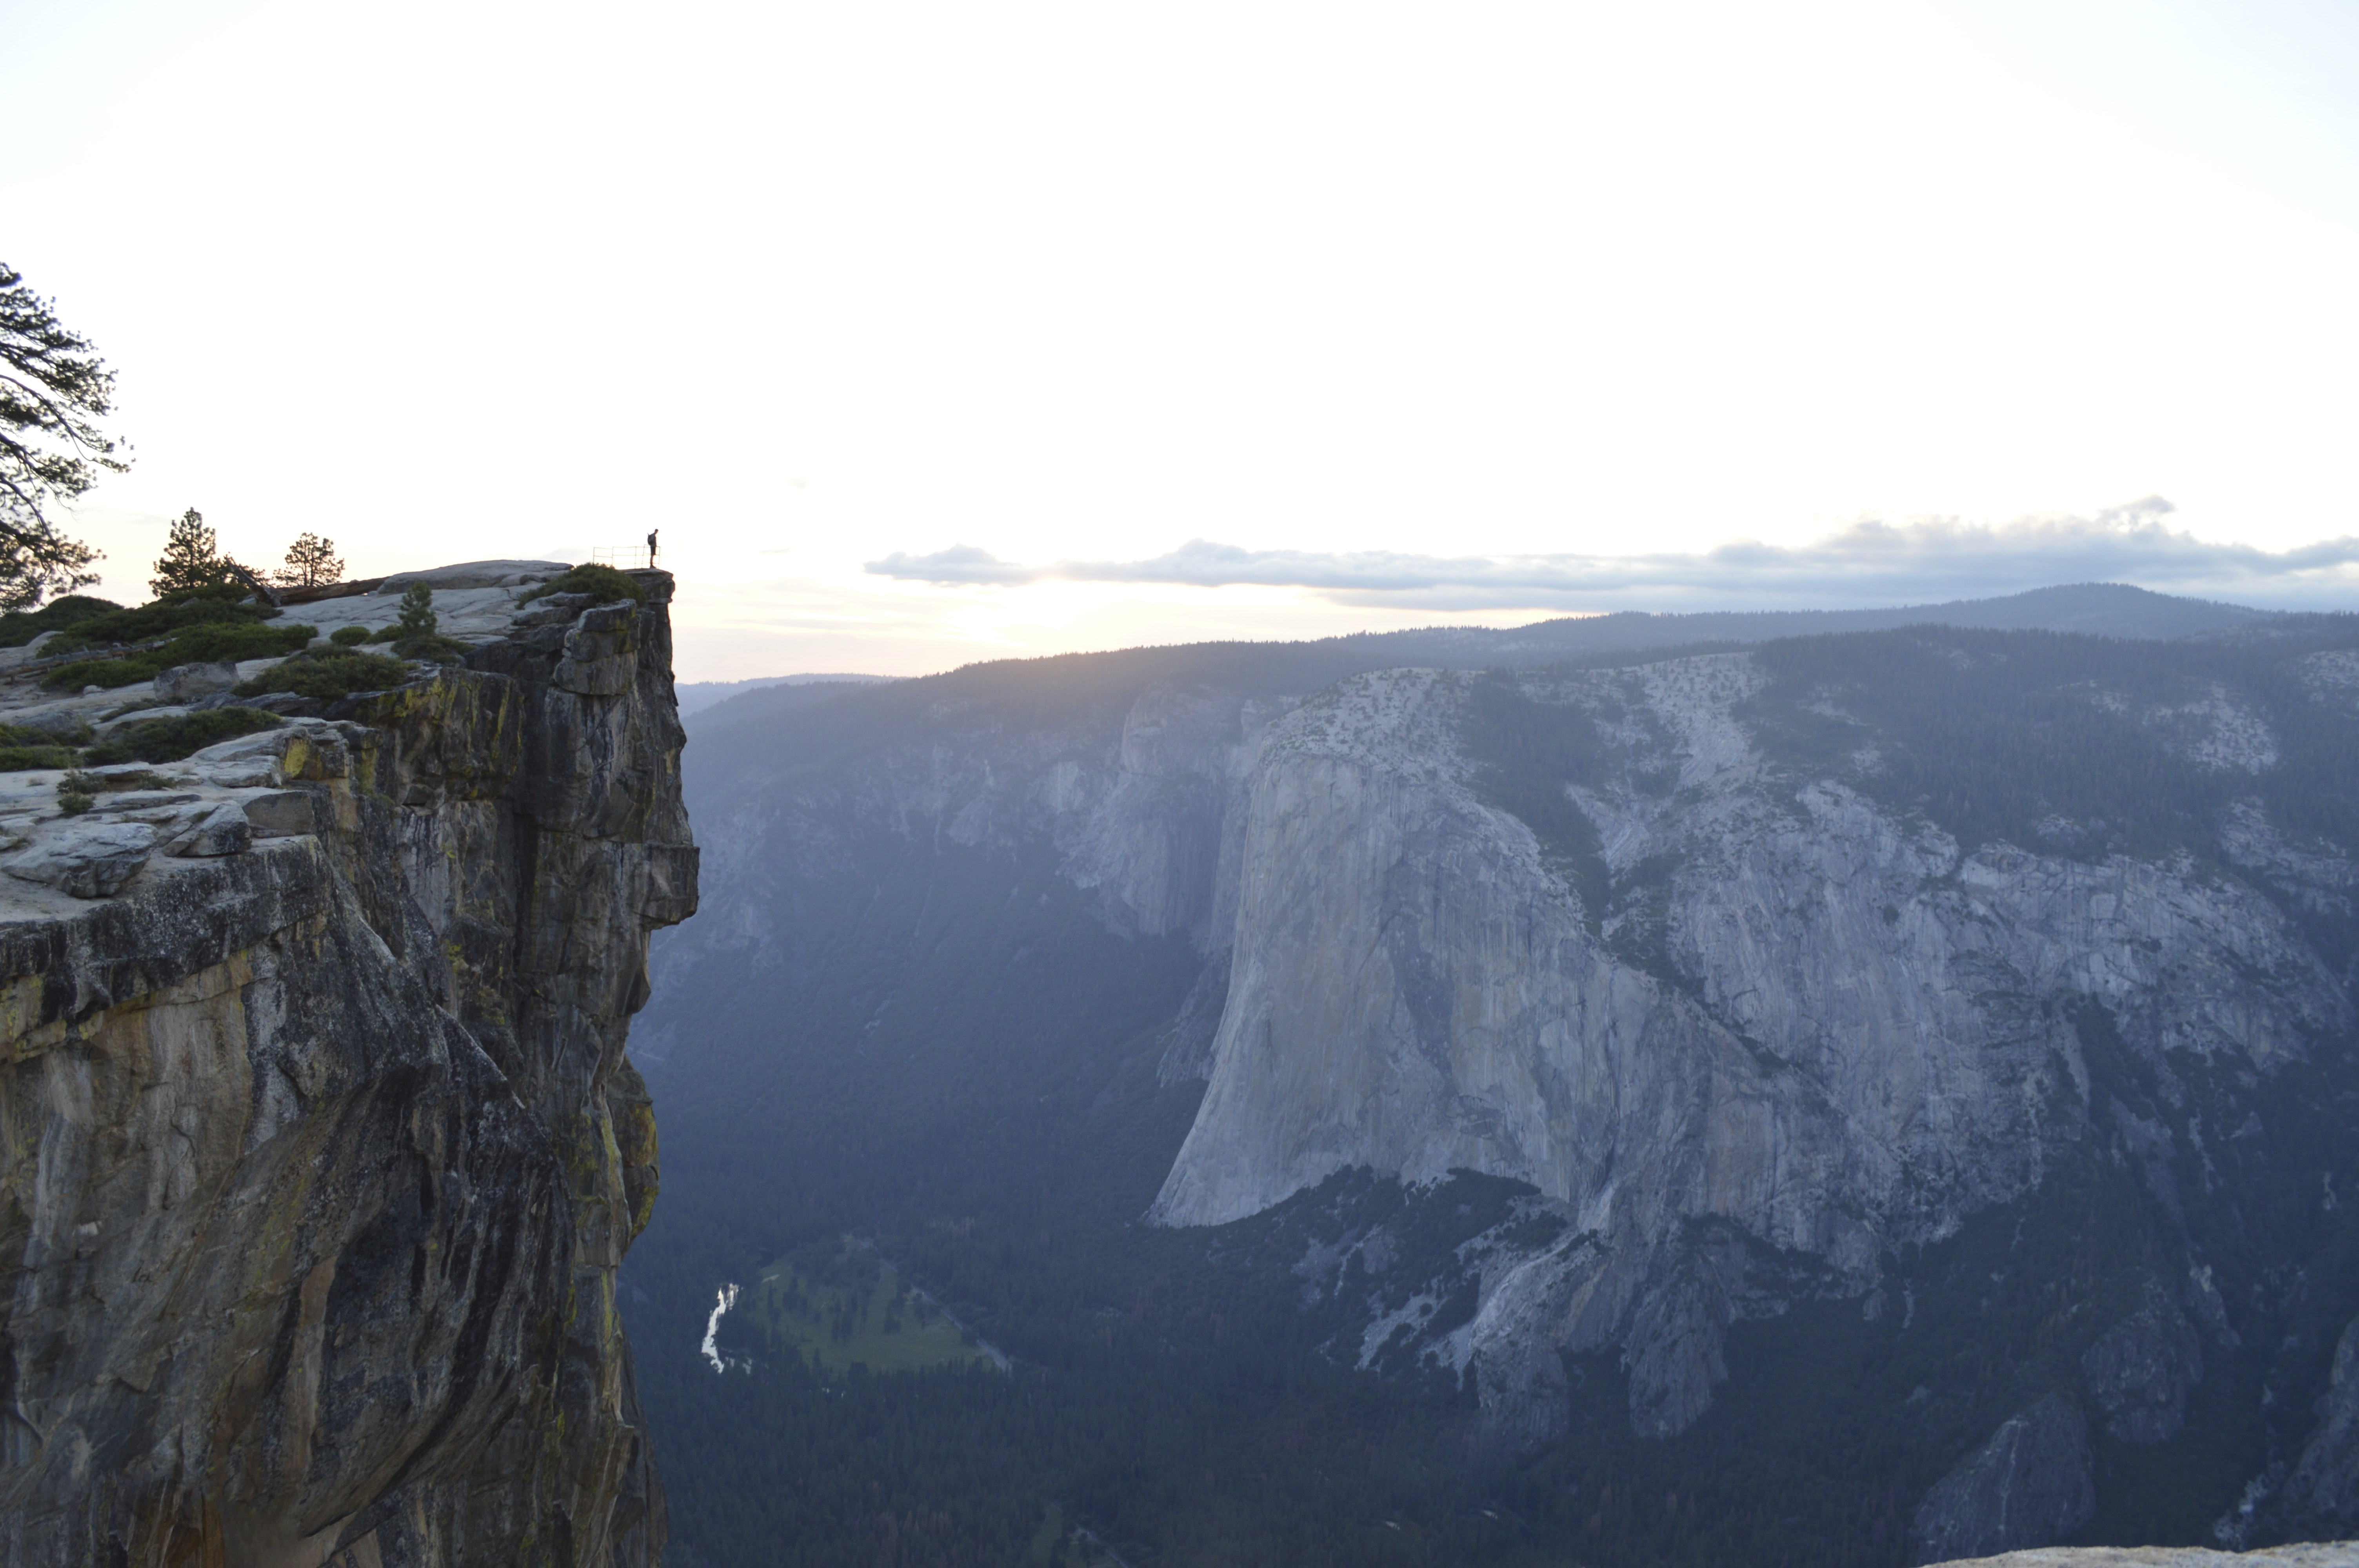 A silhouette of a man standing on a rocky ledge and looking into the breathtaking Yosemite Valley